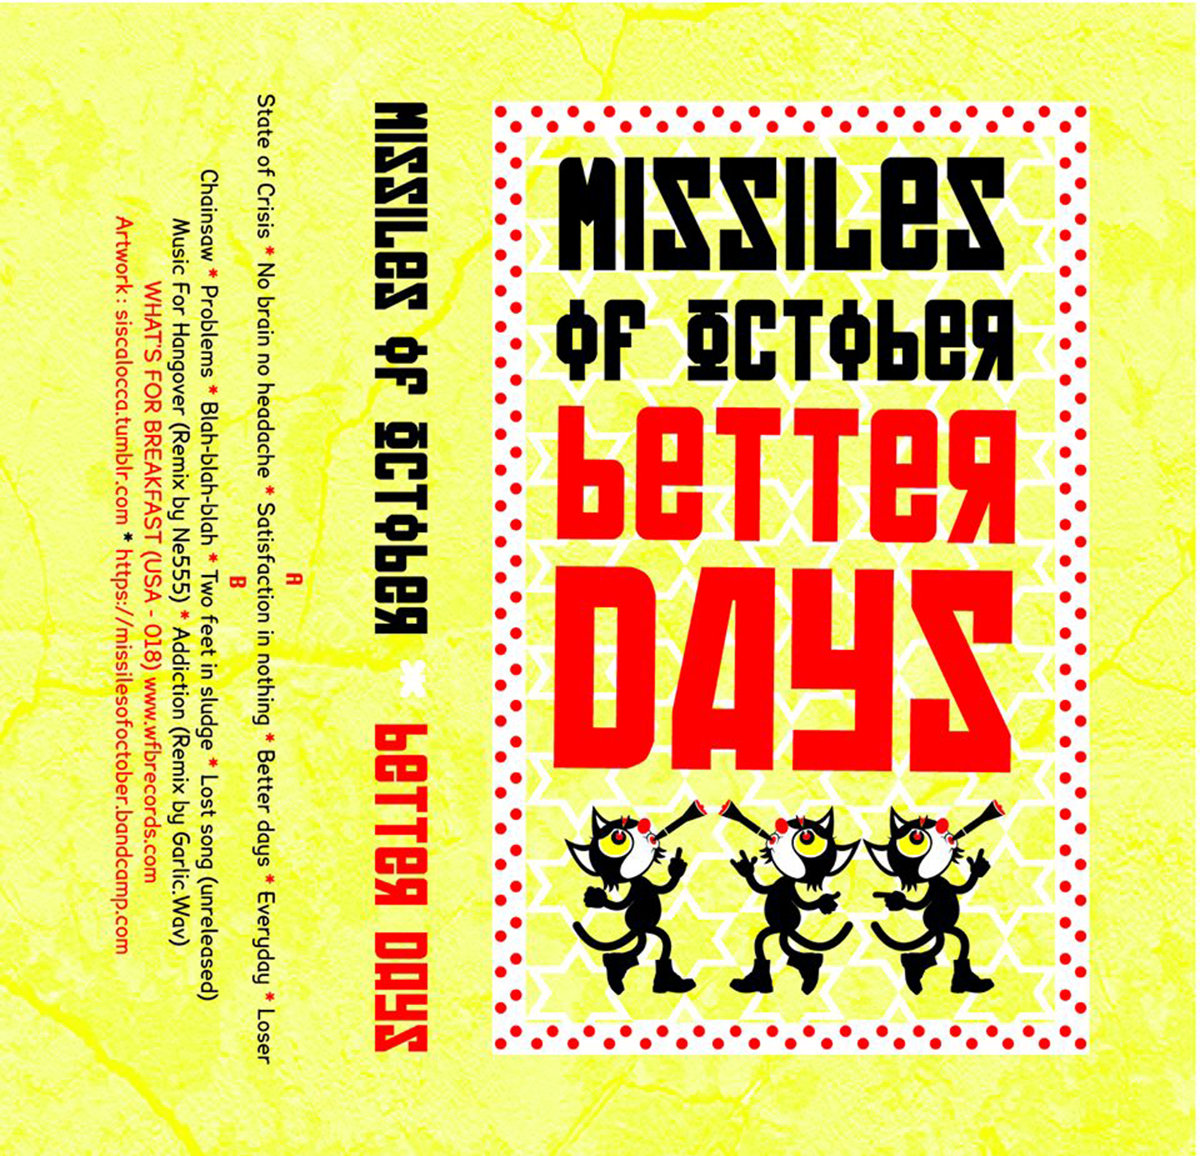 Better days (2016) | Missiles of October